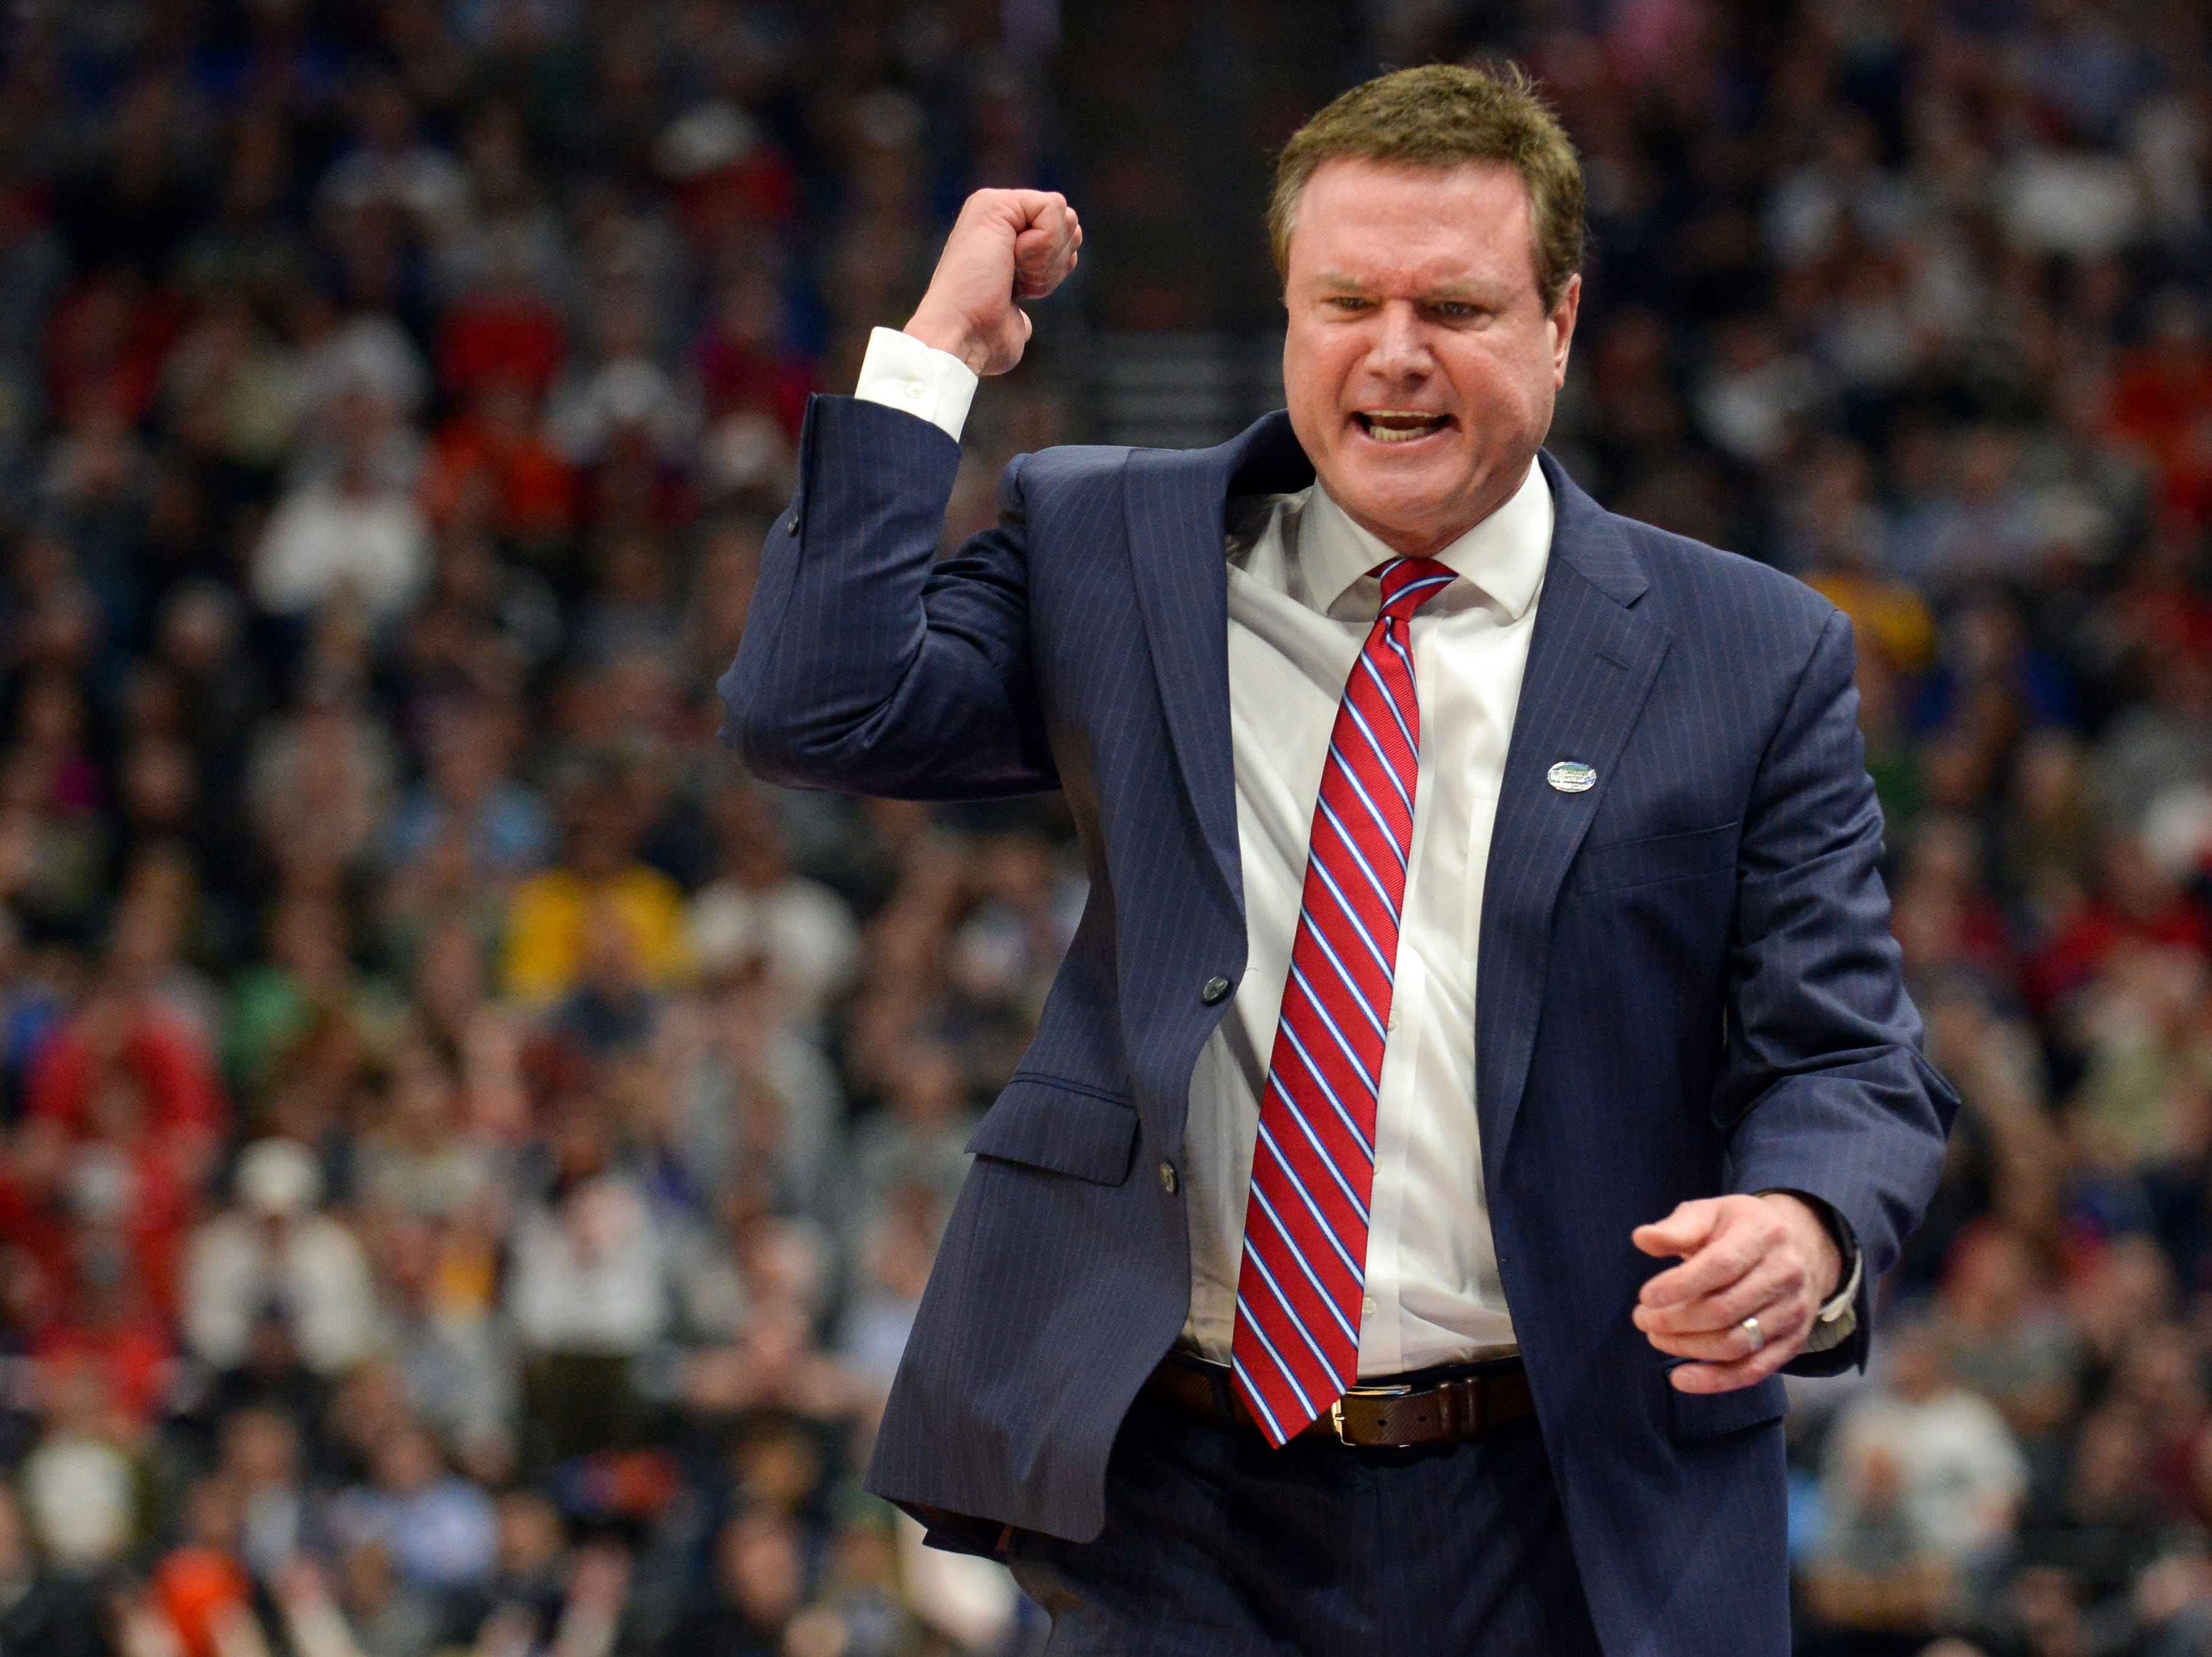 Mar 23, 2019; Salt Lake City, UT, USA; Kansas Jayhawks head coach Bill Self reacts during the first half in the second round of the 2019 NCAA Tournament against the Auburn Tigers at Vivint Smart Home Arena. Mandatory Credit: Gary A. Vasquez-USA TODAY Sports